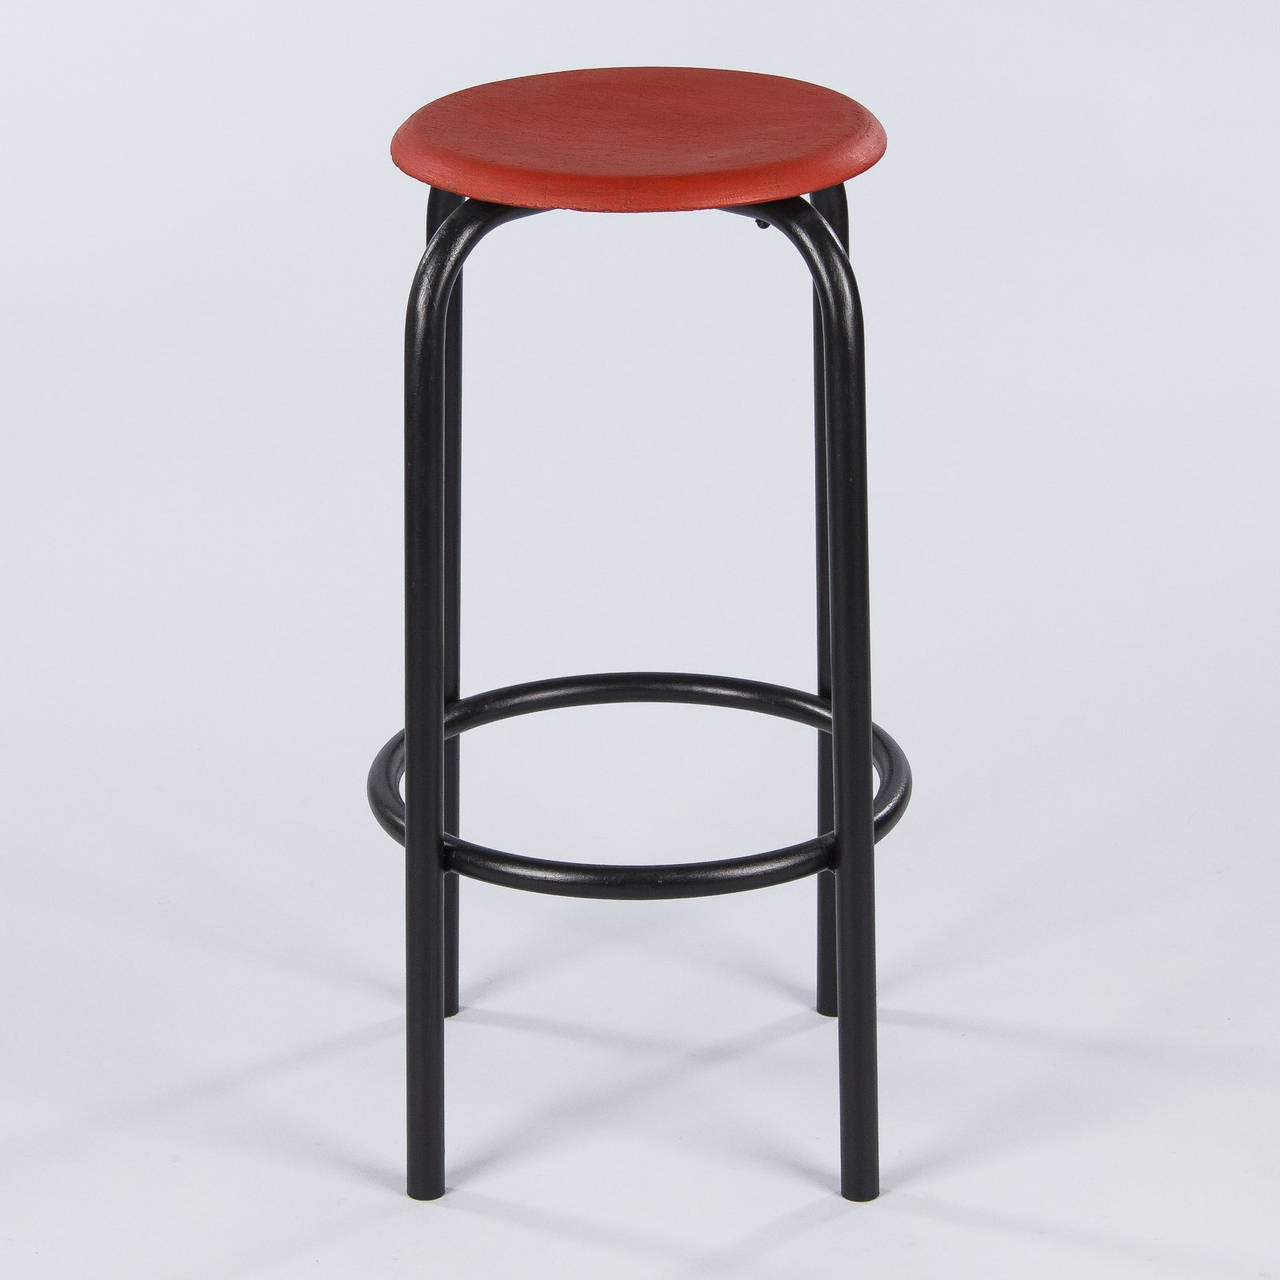 Metal French Vintage Industrial Red and Black Stool, 1950s